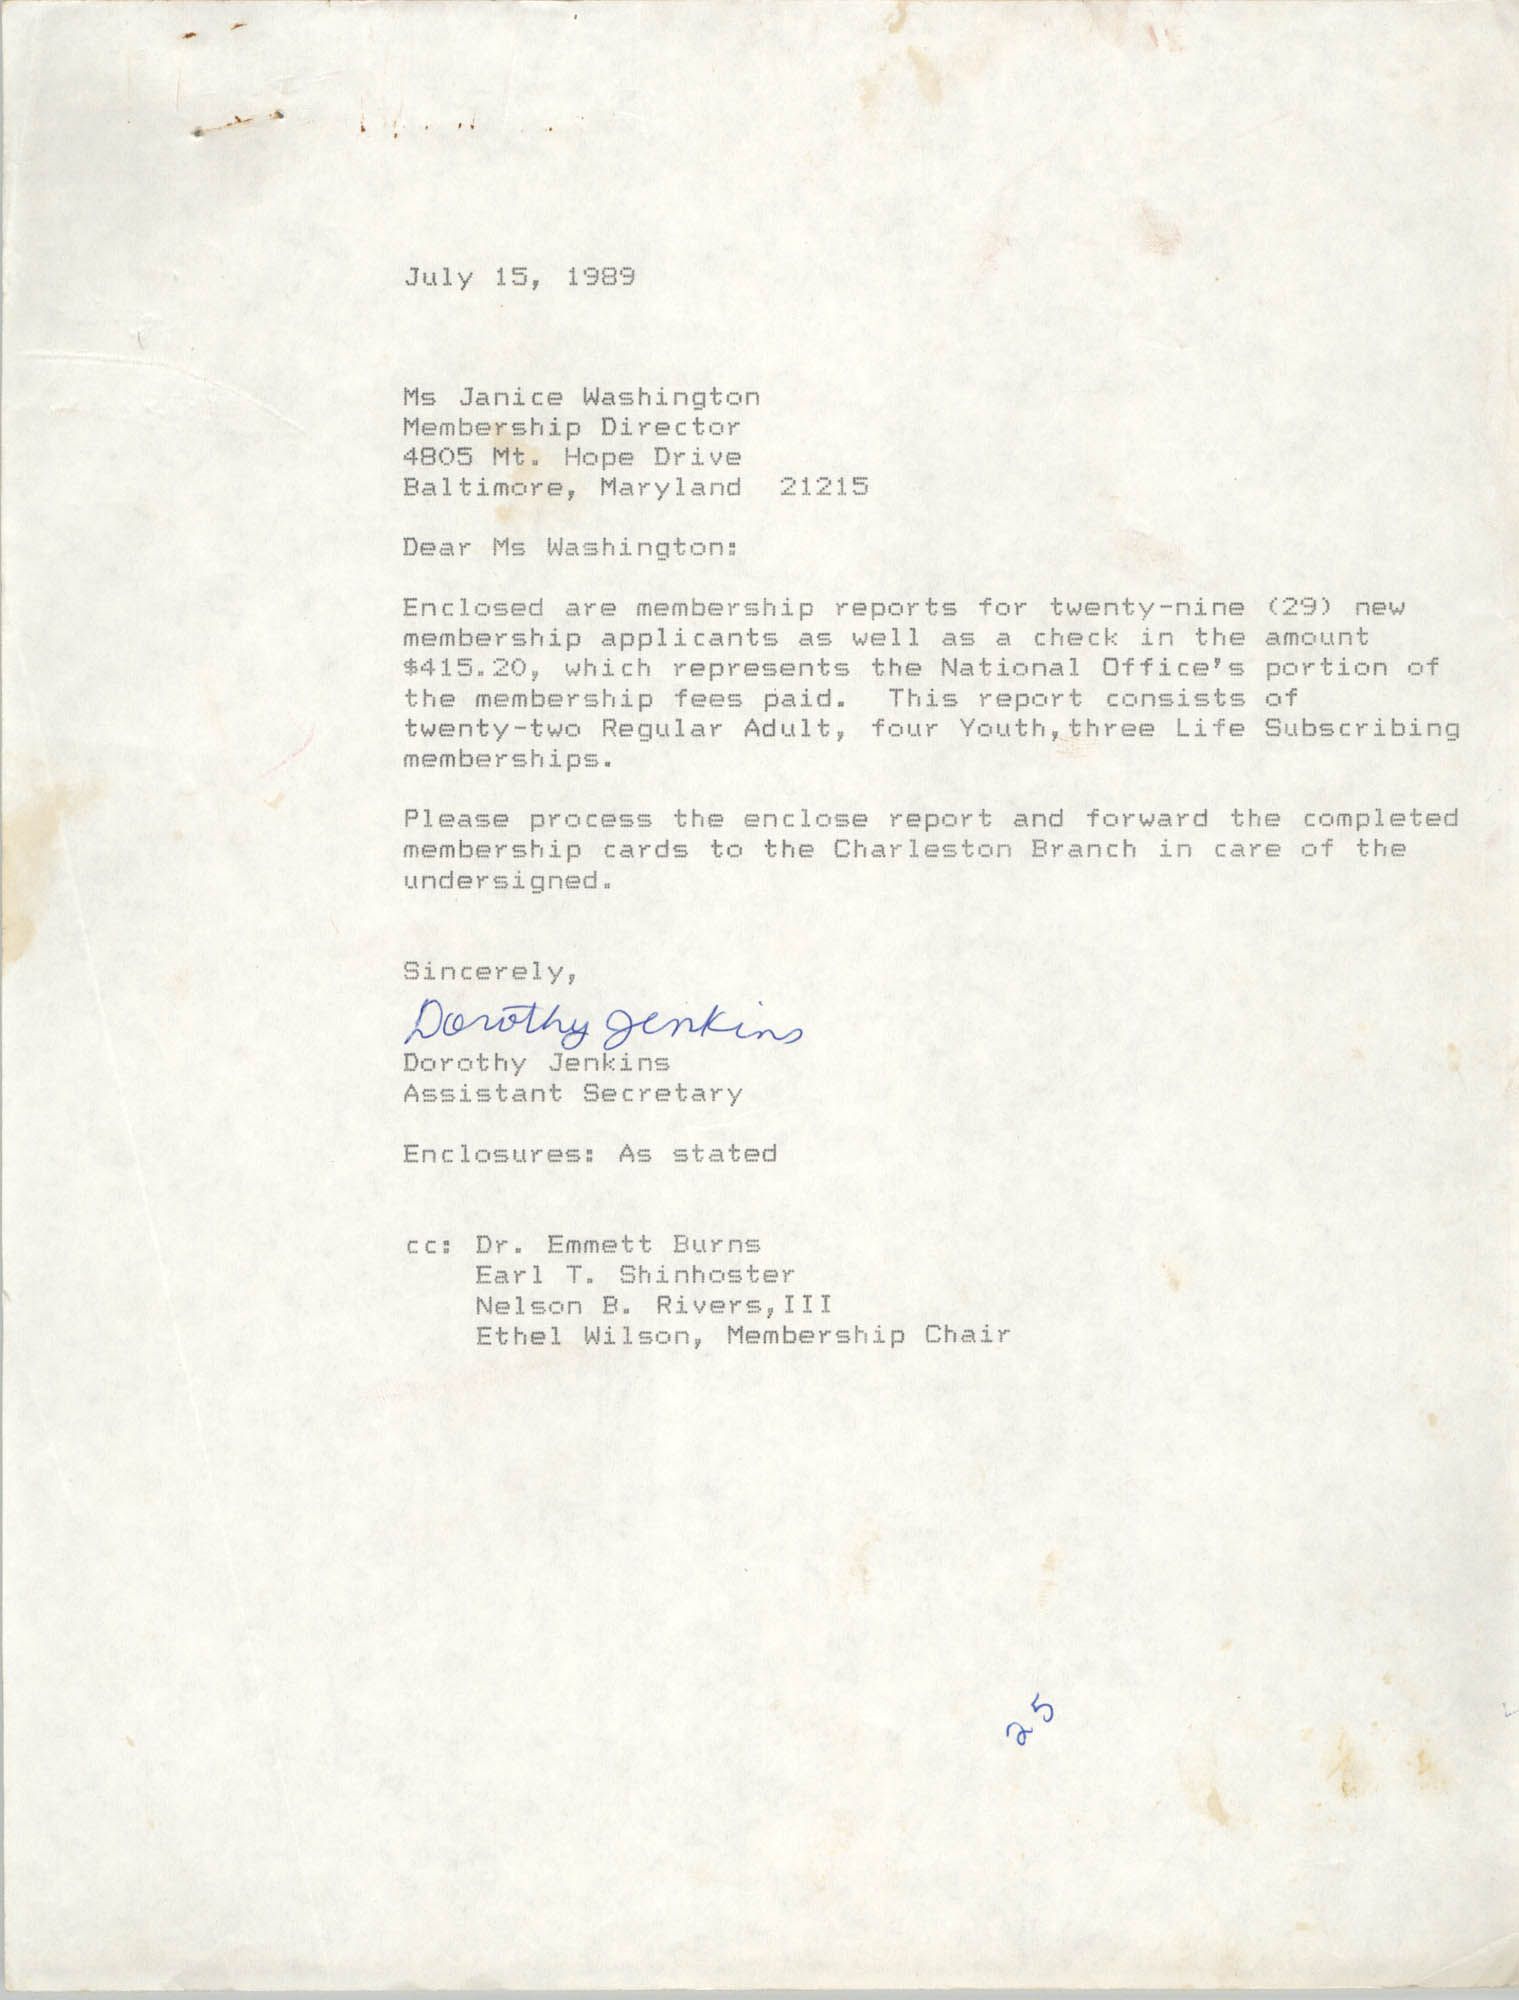 Letter from Dorothy Jenkins to Janice Washington, NAACP, July 15, 1989